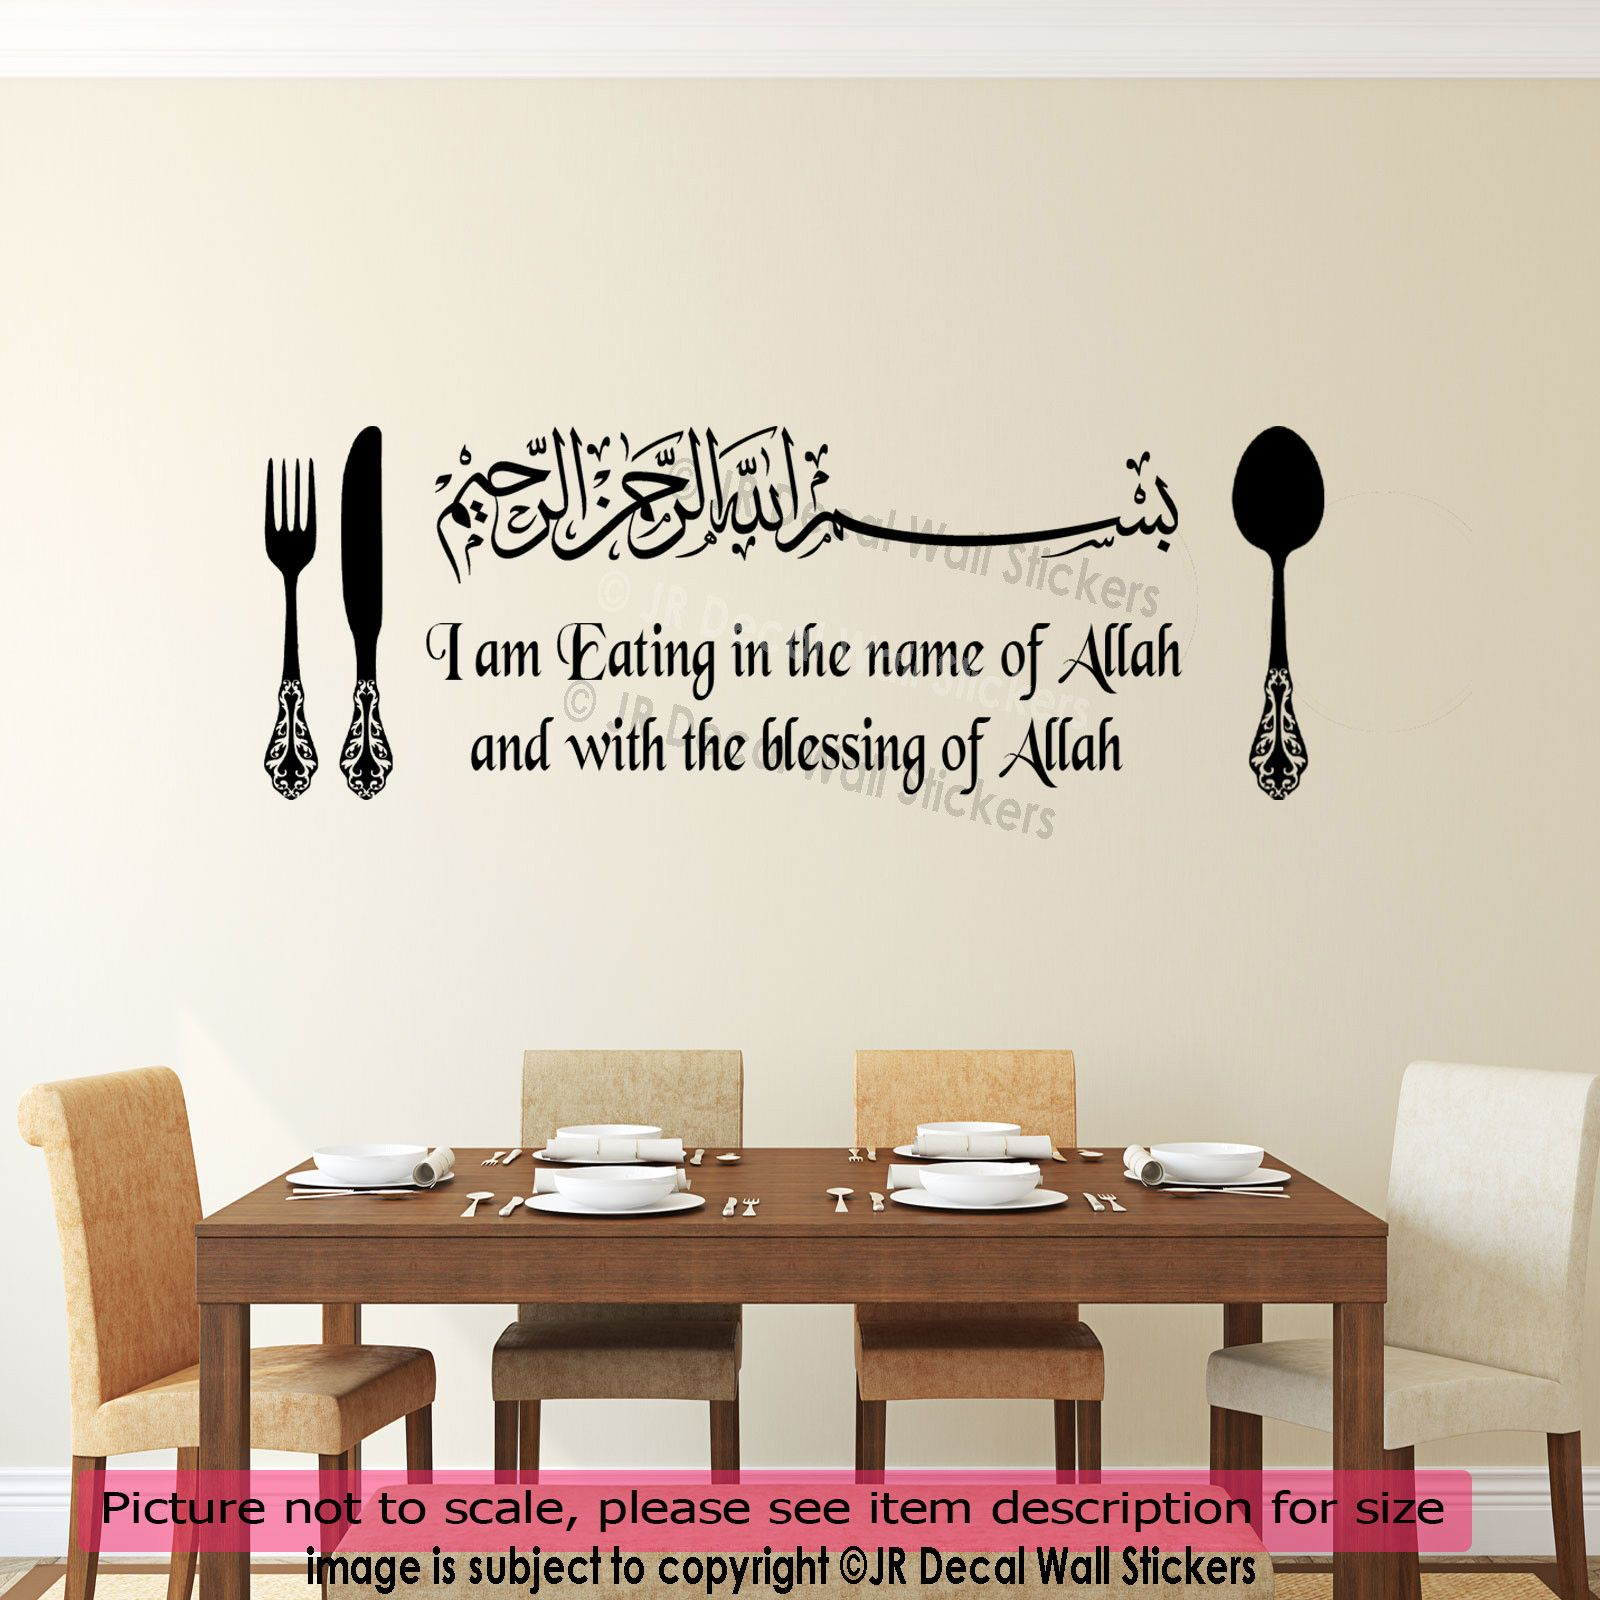 dining-room-islamic-wall-stickers-i-am-eating-with-name-of-allah